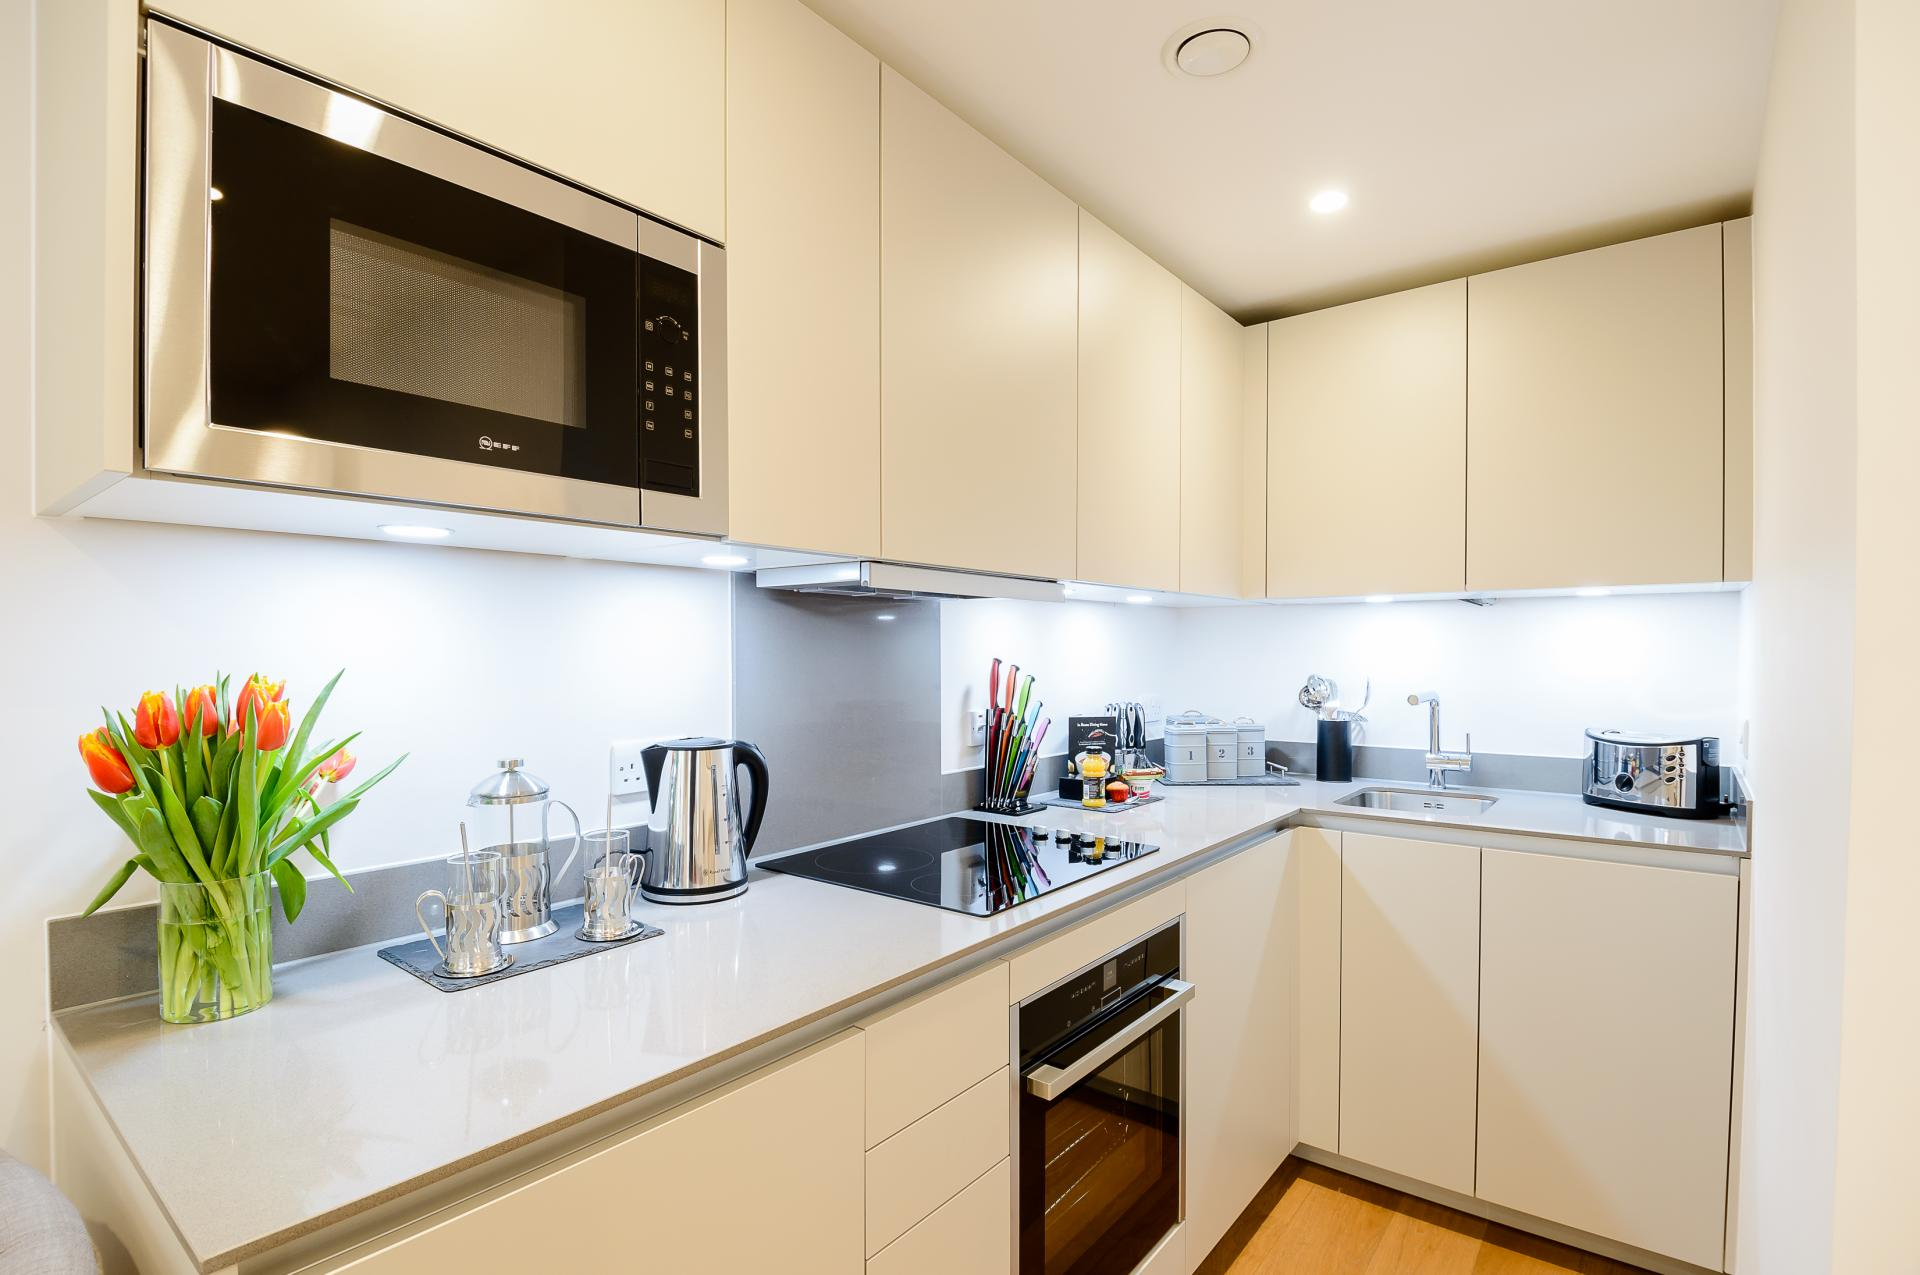 Kitchen at LAK Serviced Apartments, Gloucester Road, London - Citybase Apartments